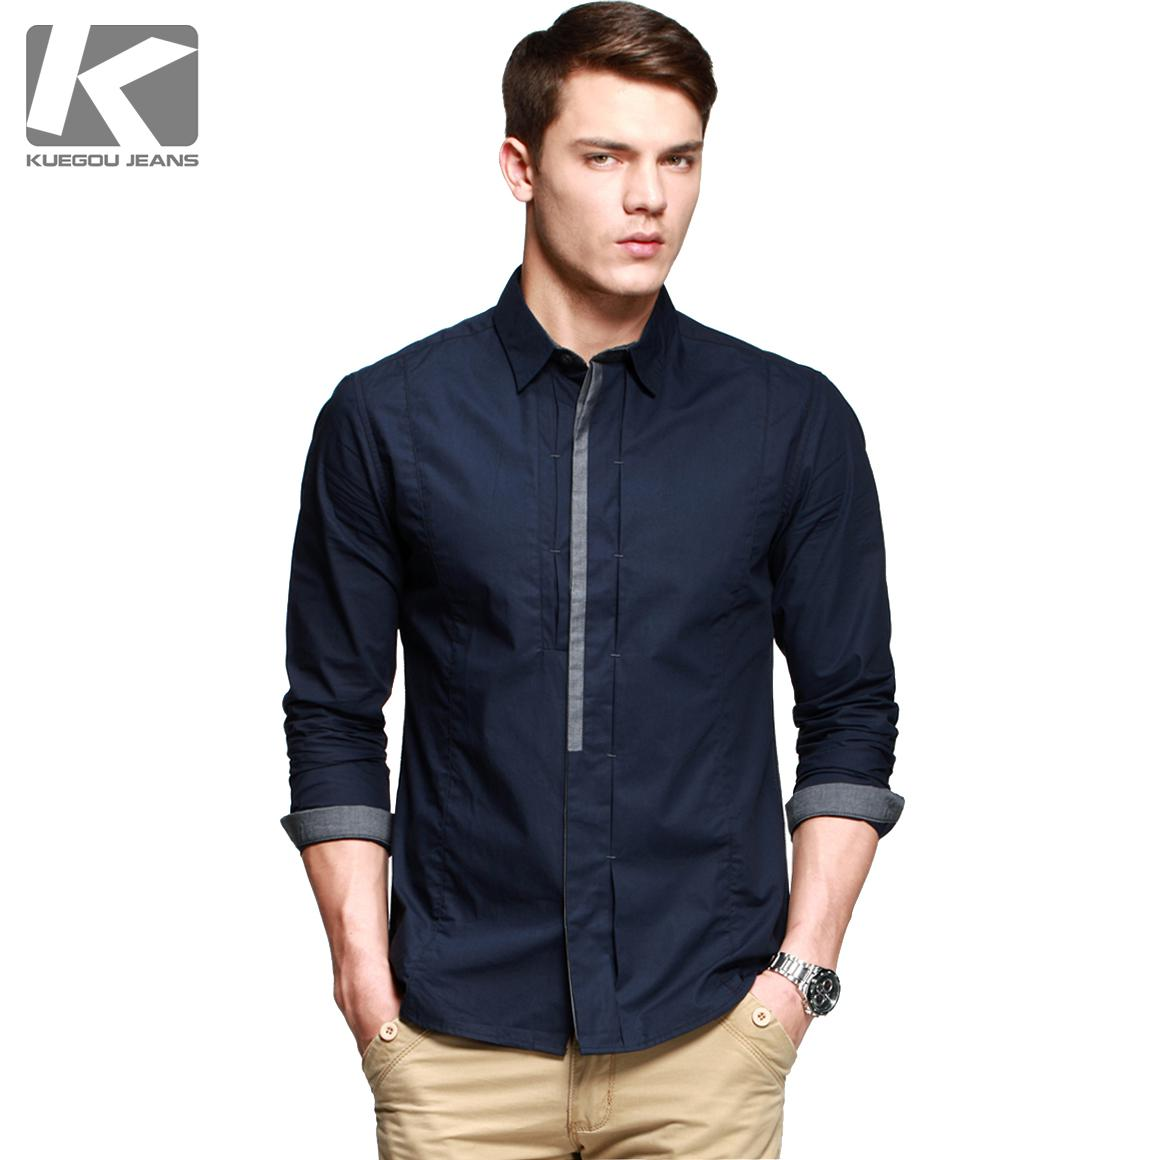 Business casual shirts for men images for Corporate shirts for men